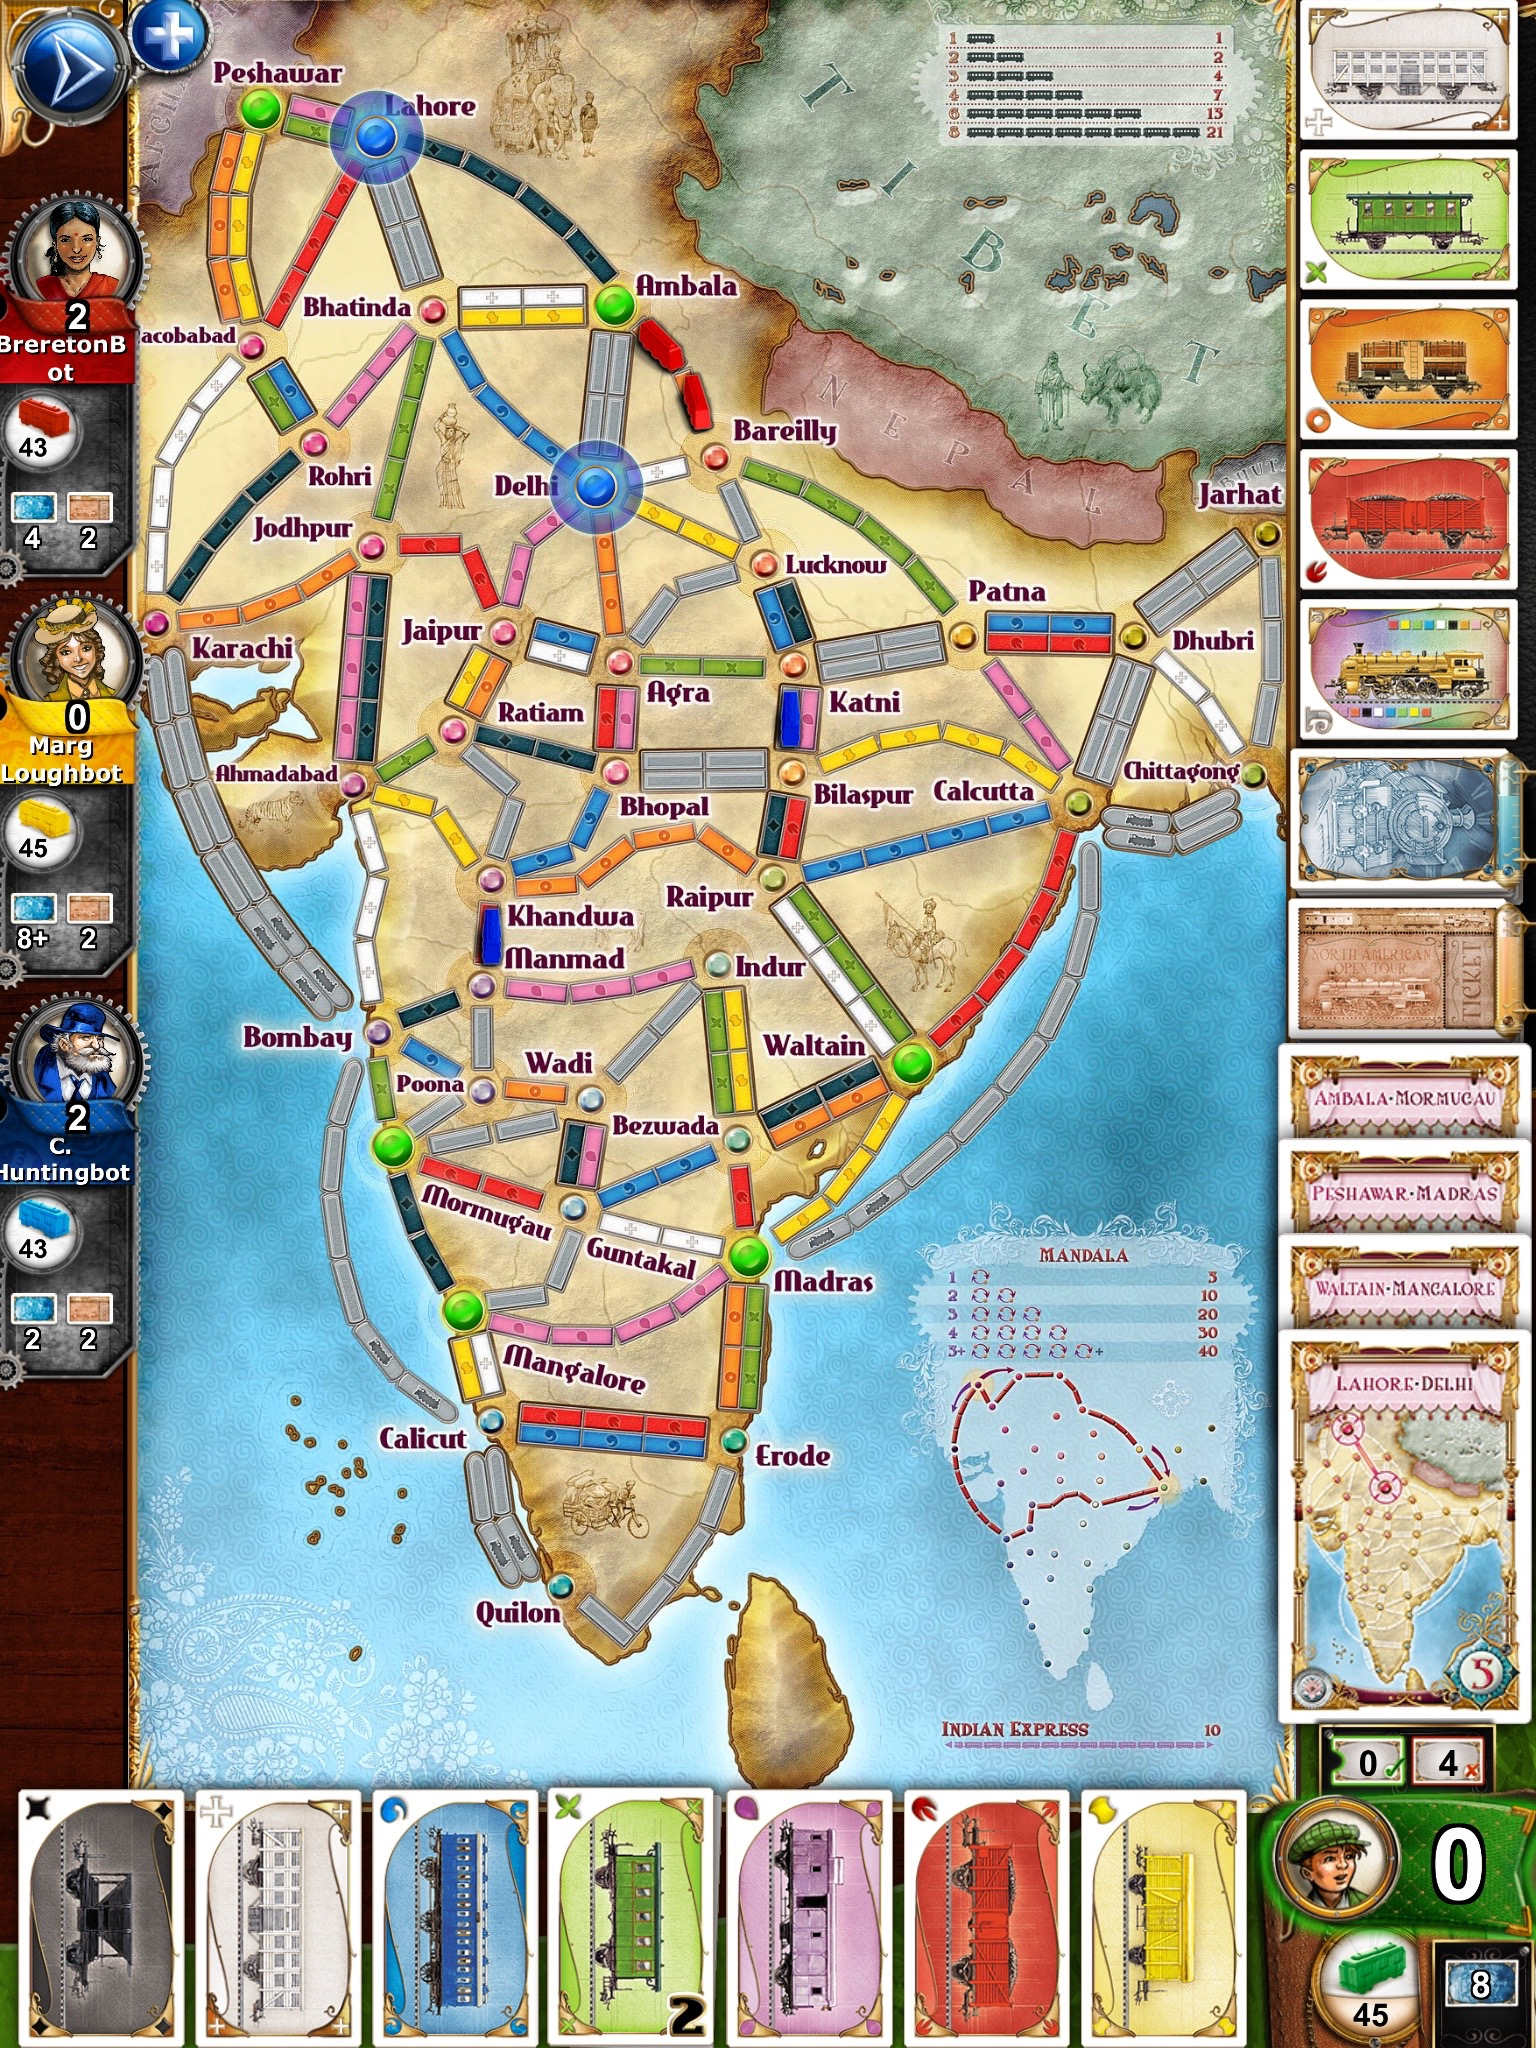 Ticket to Ride 2.0